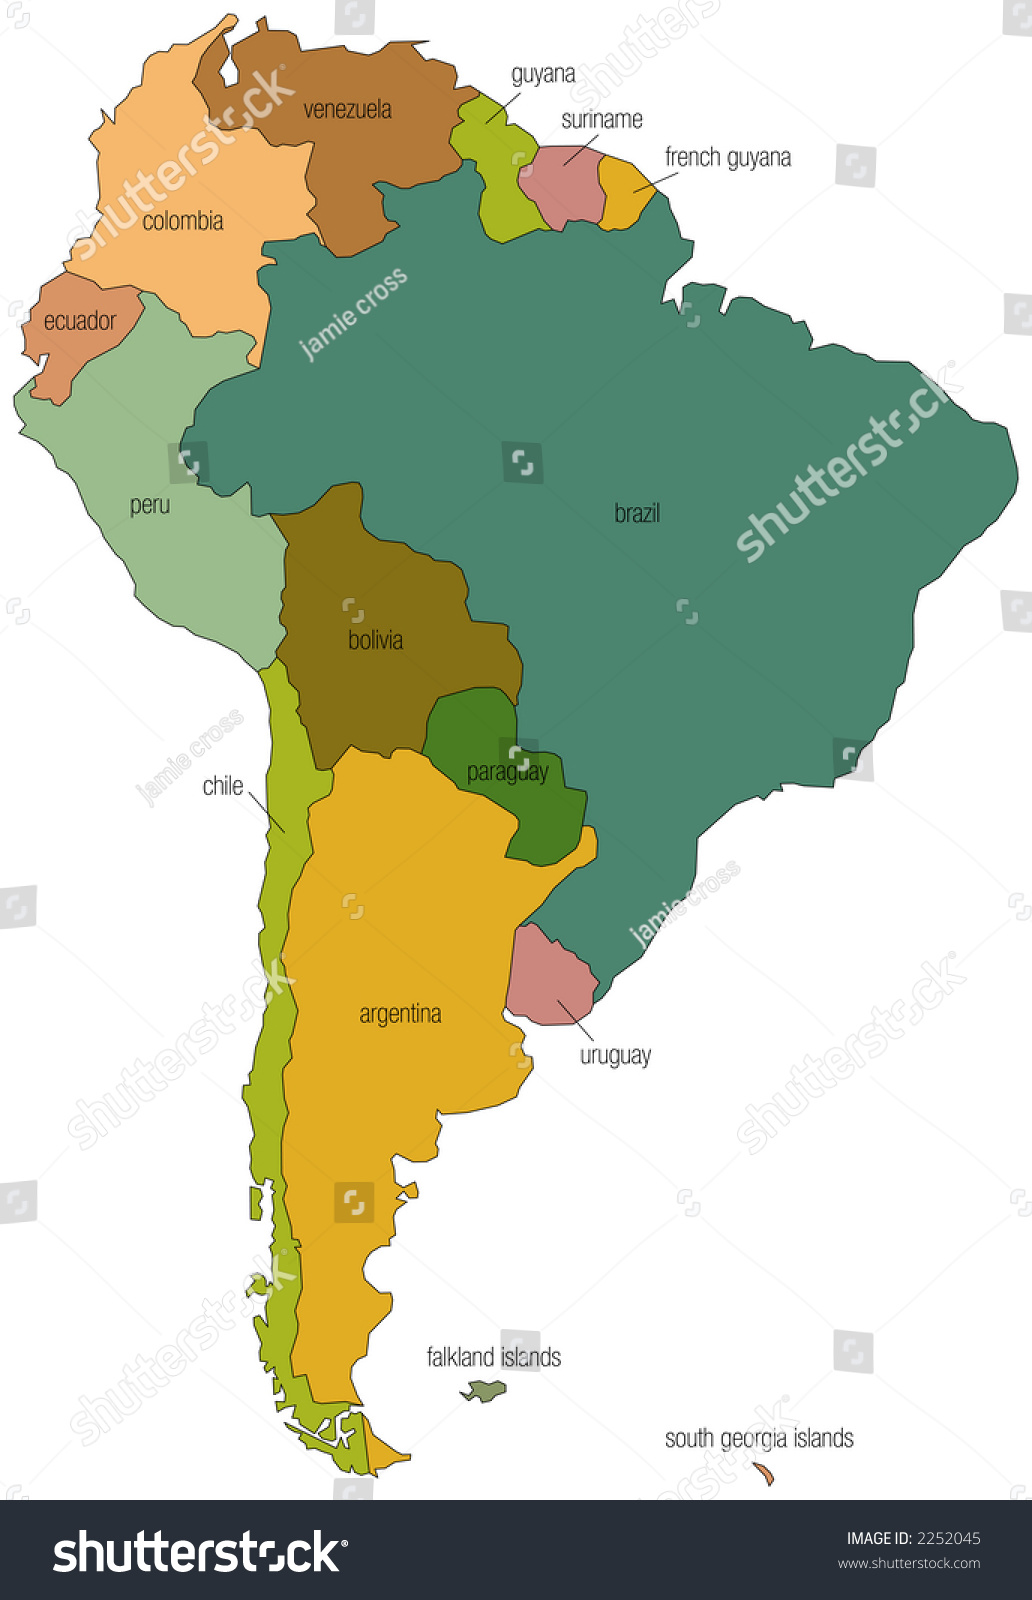 a full color map of south america